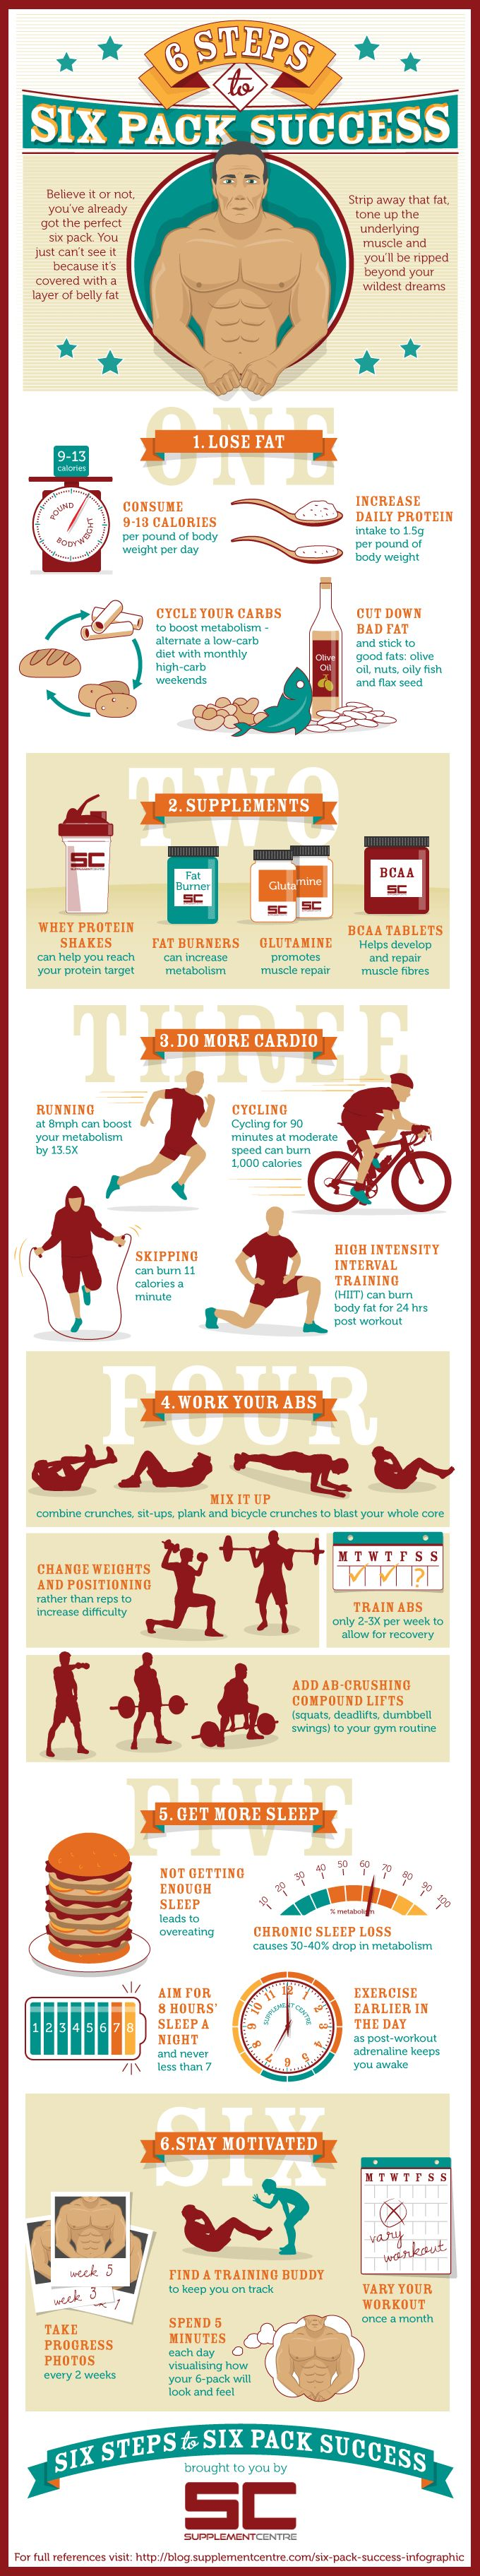 6 Steps to Six Pack Success #infographic | Fitness & Workouts